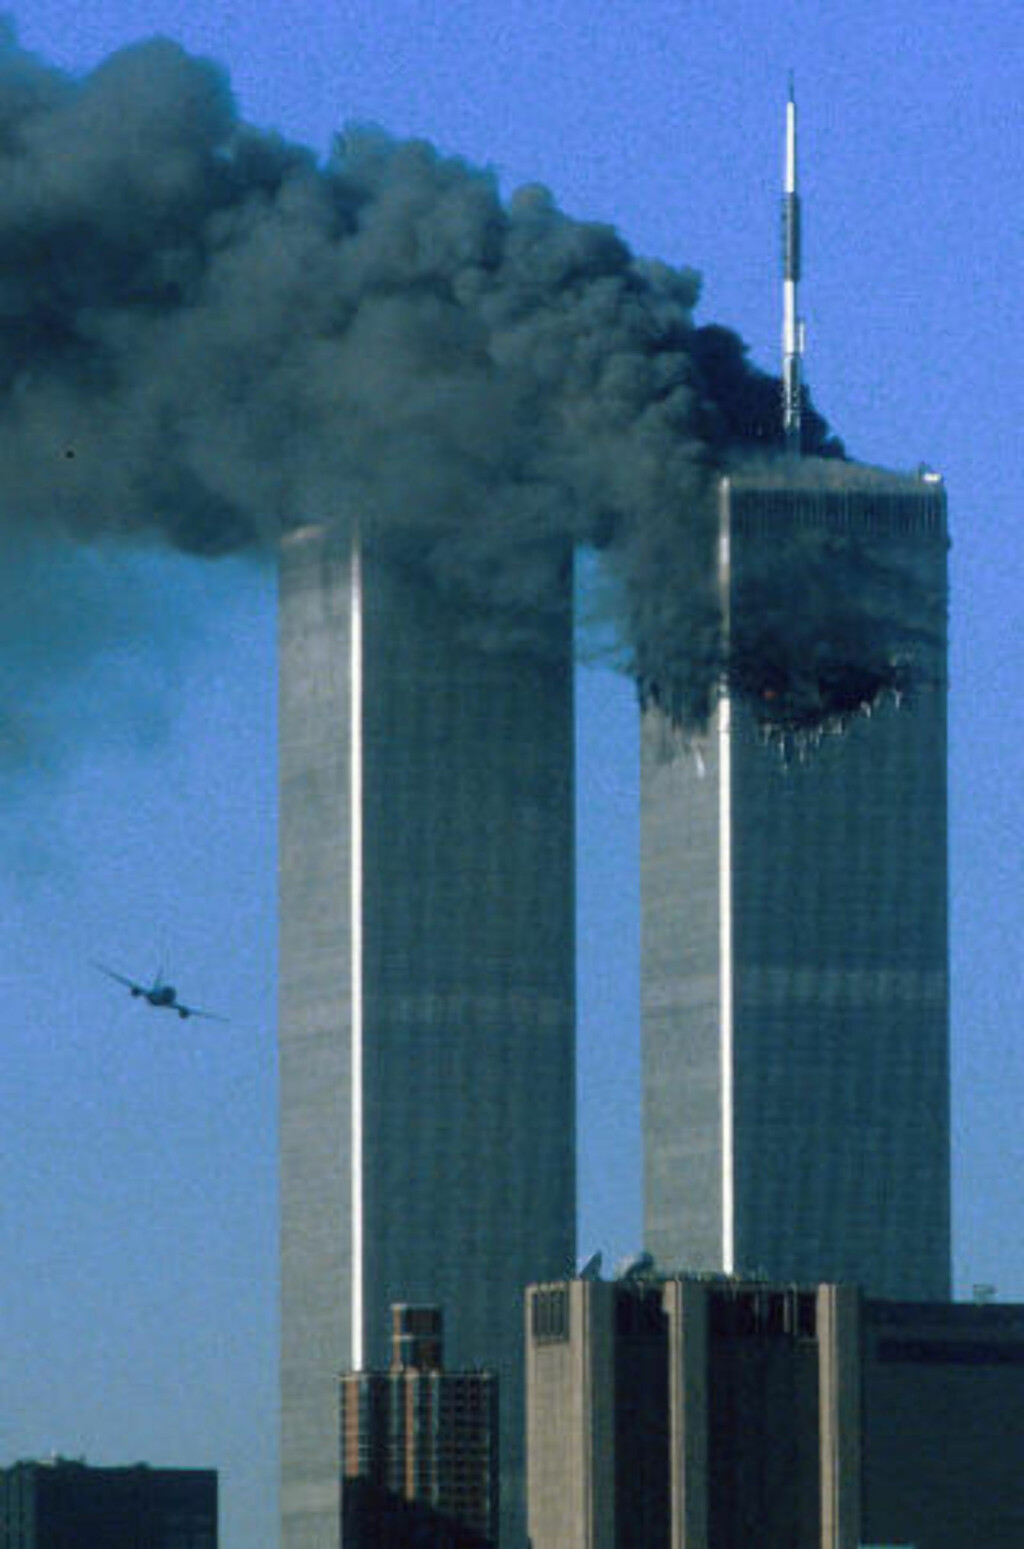 TERROR:  United Airlines flight 175 flyr er i ferd med å krasje inn i World Trade Center. Terrorangrepene 11. september skapte en ny verden og gjorde Osama bin Laden til verdens mest ettersøkte mann. Foto: REUTERS/Sean Adair